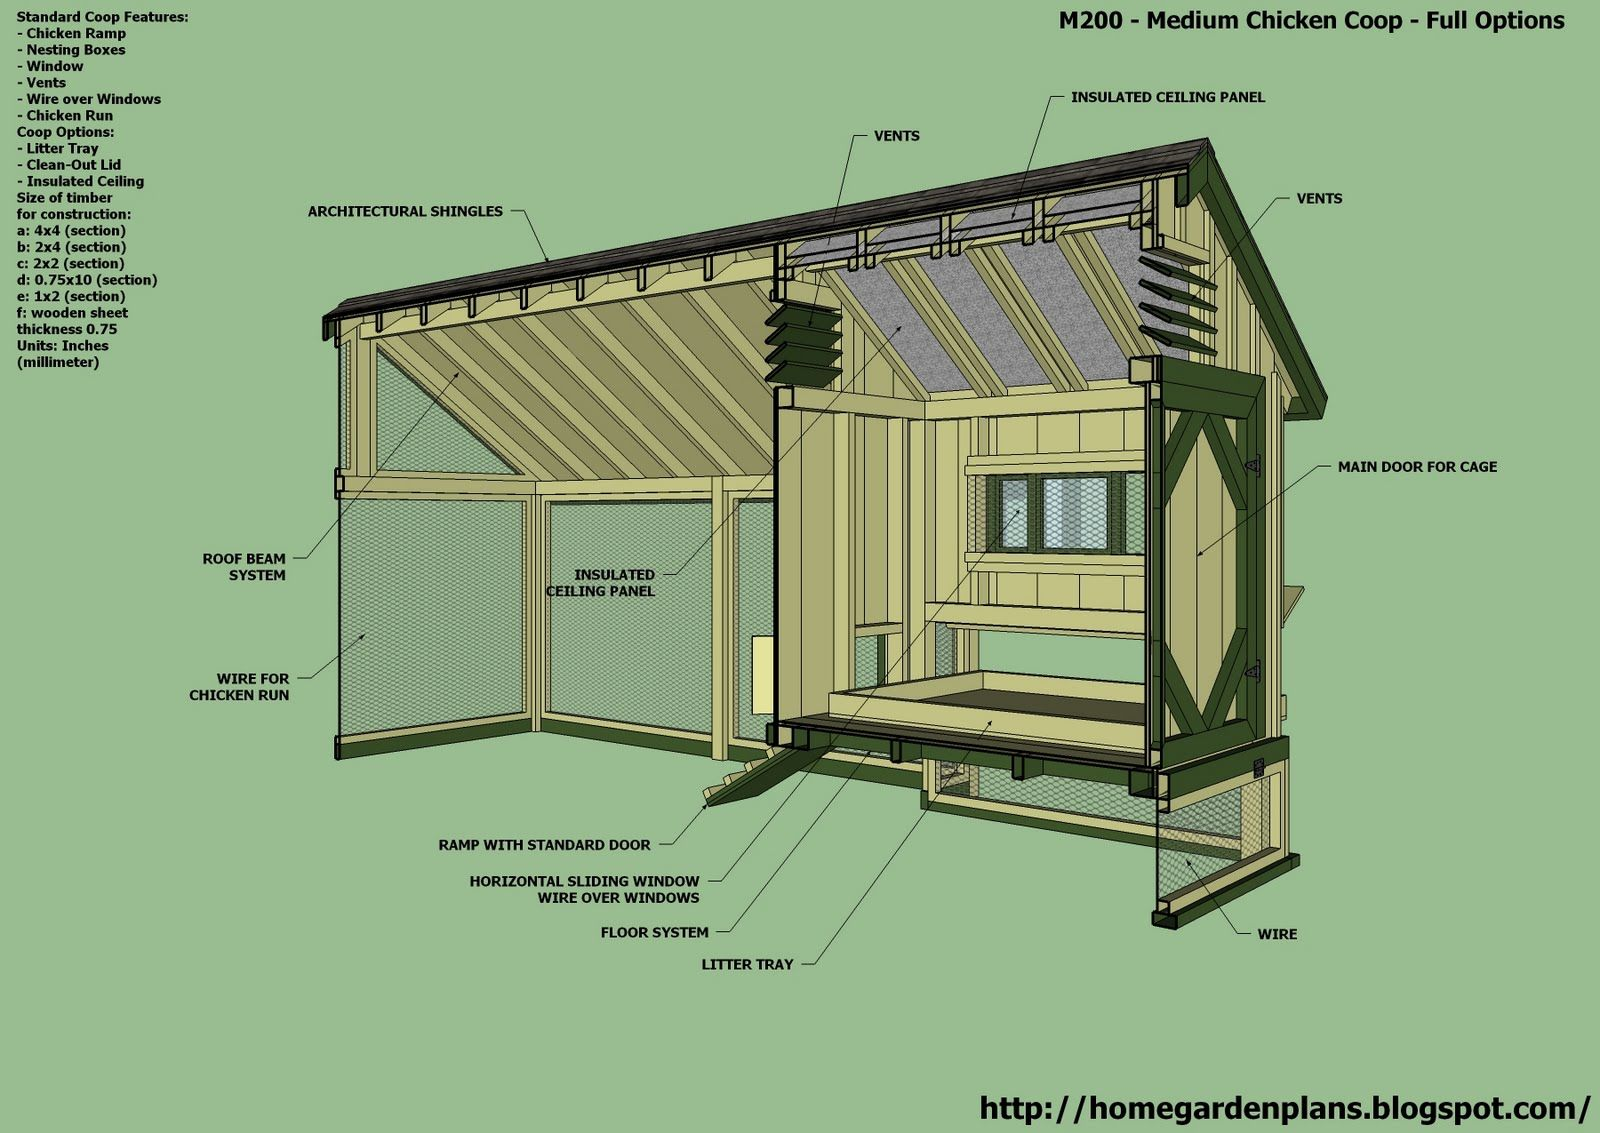 Home garden plans m200 perfect options backyard for Free coop plans